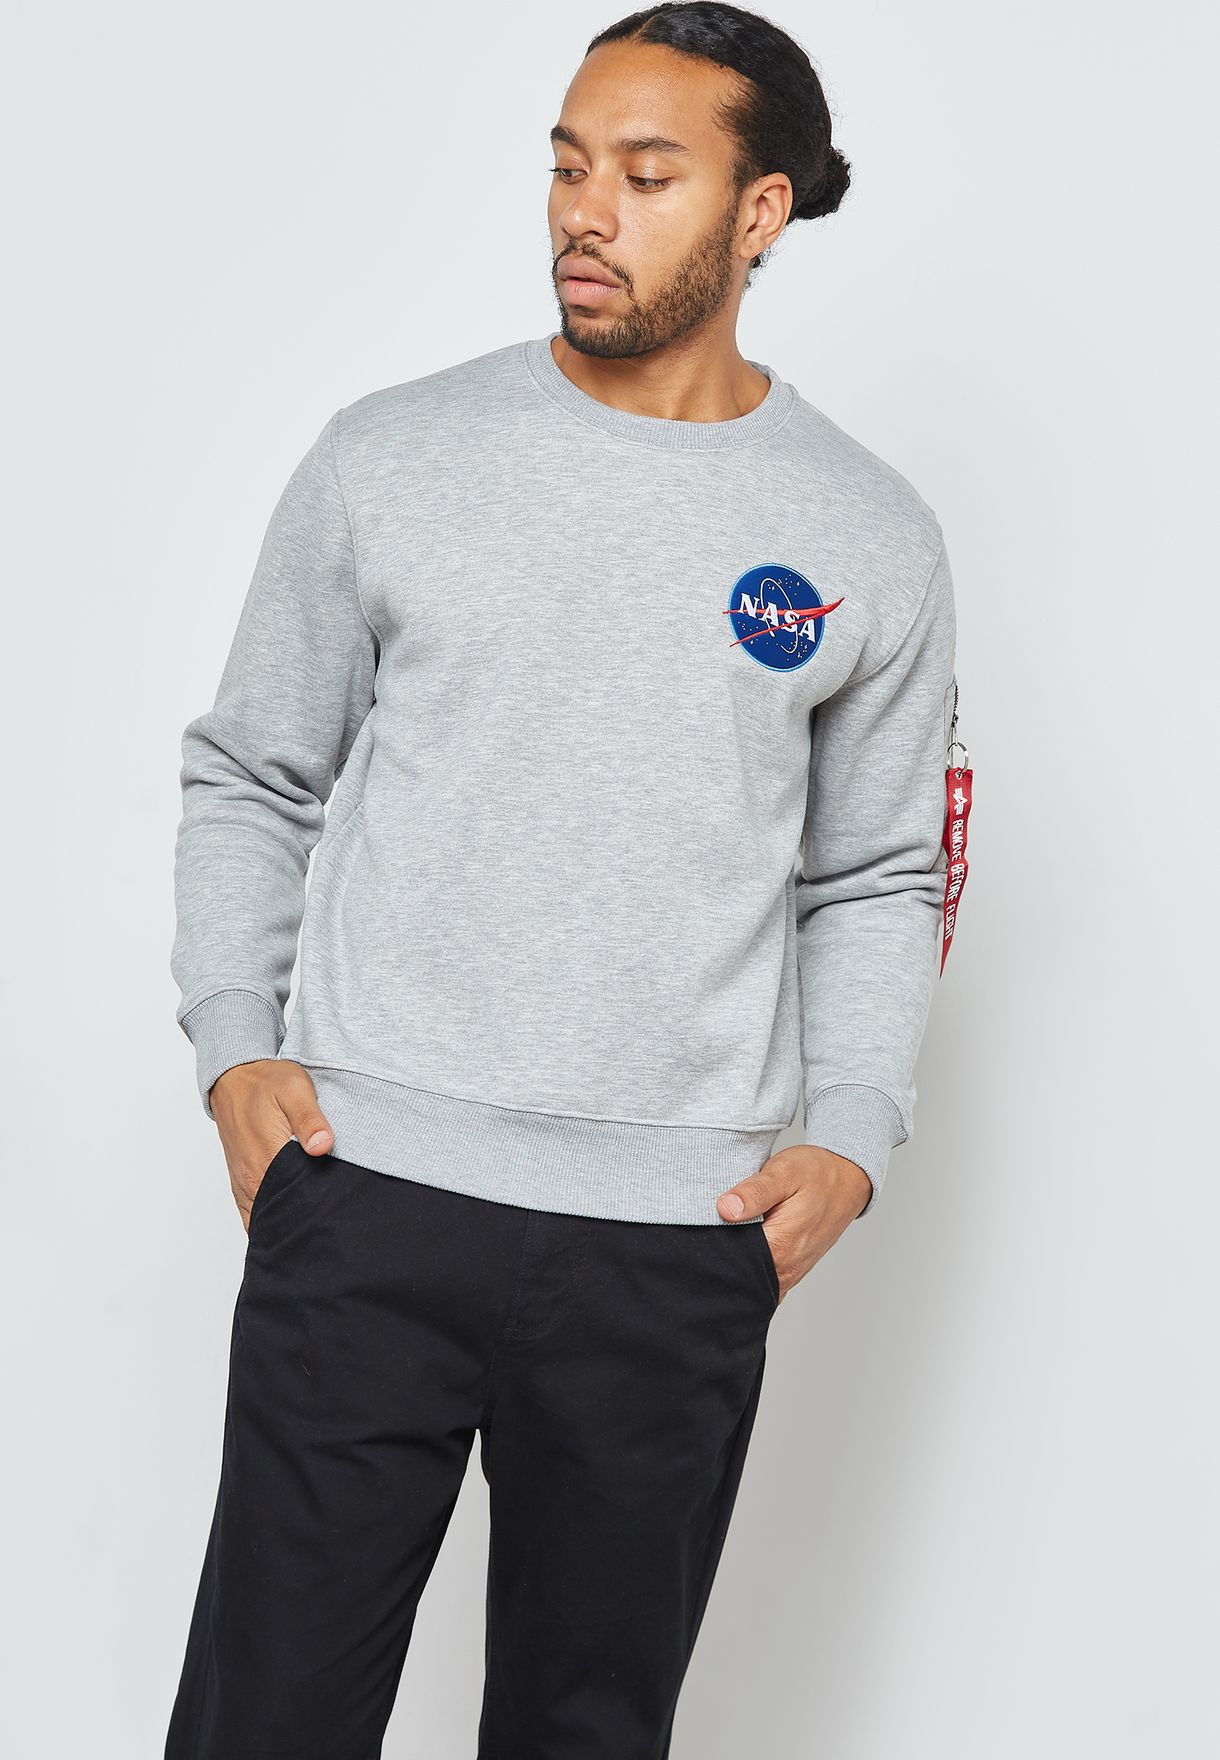 3b9eedf737 Shop Alpha Industries grey NASA Space Shuttle Sweatshirt 178307 for ...